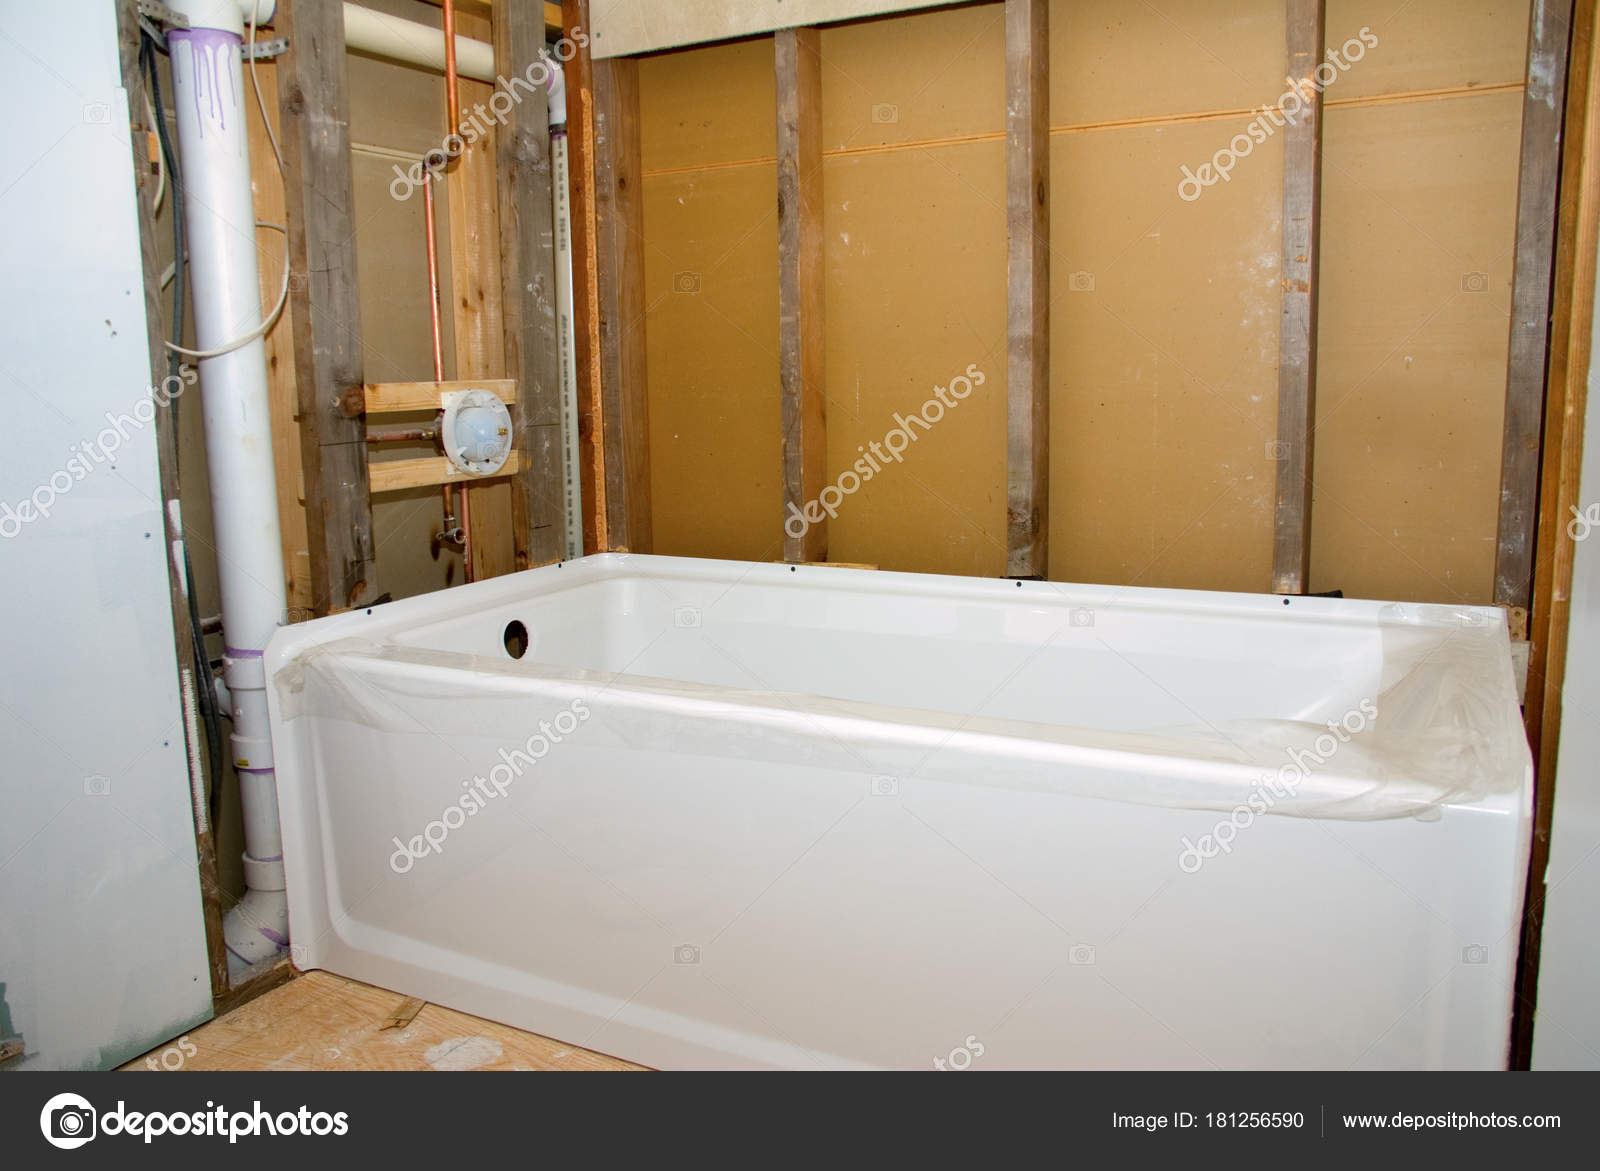 https://st3.depositphotos.com/1066221/18125/i/1600/depositphotos_181256590-stock-photo-bathroom-remodel-tub-and-bare.jpg